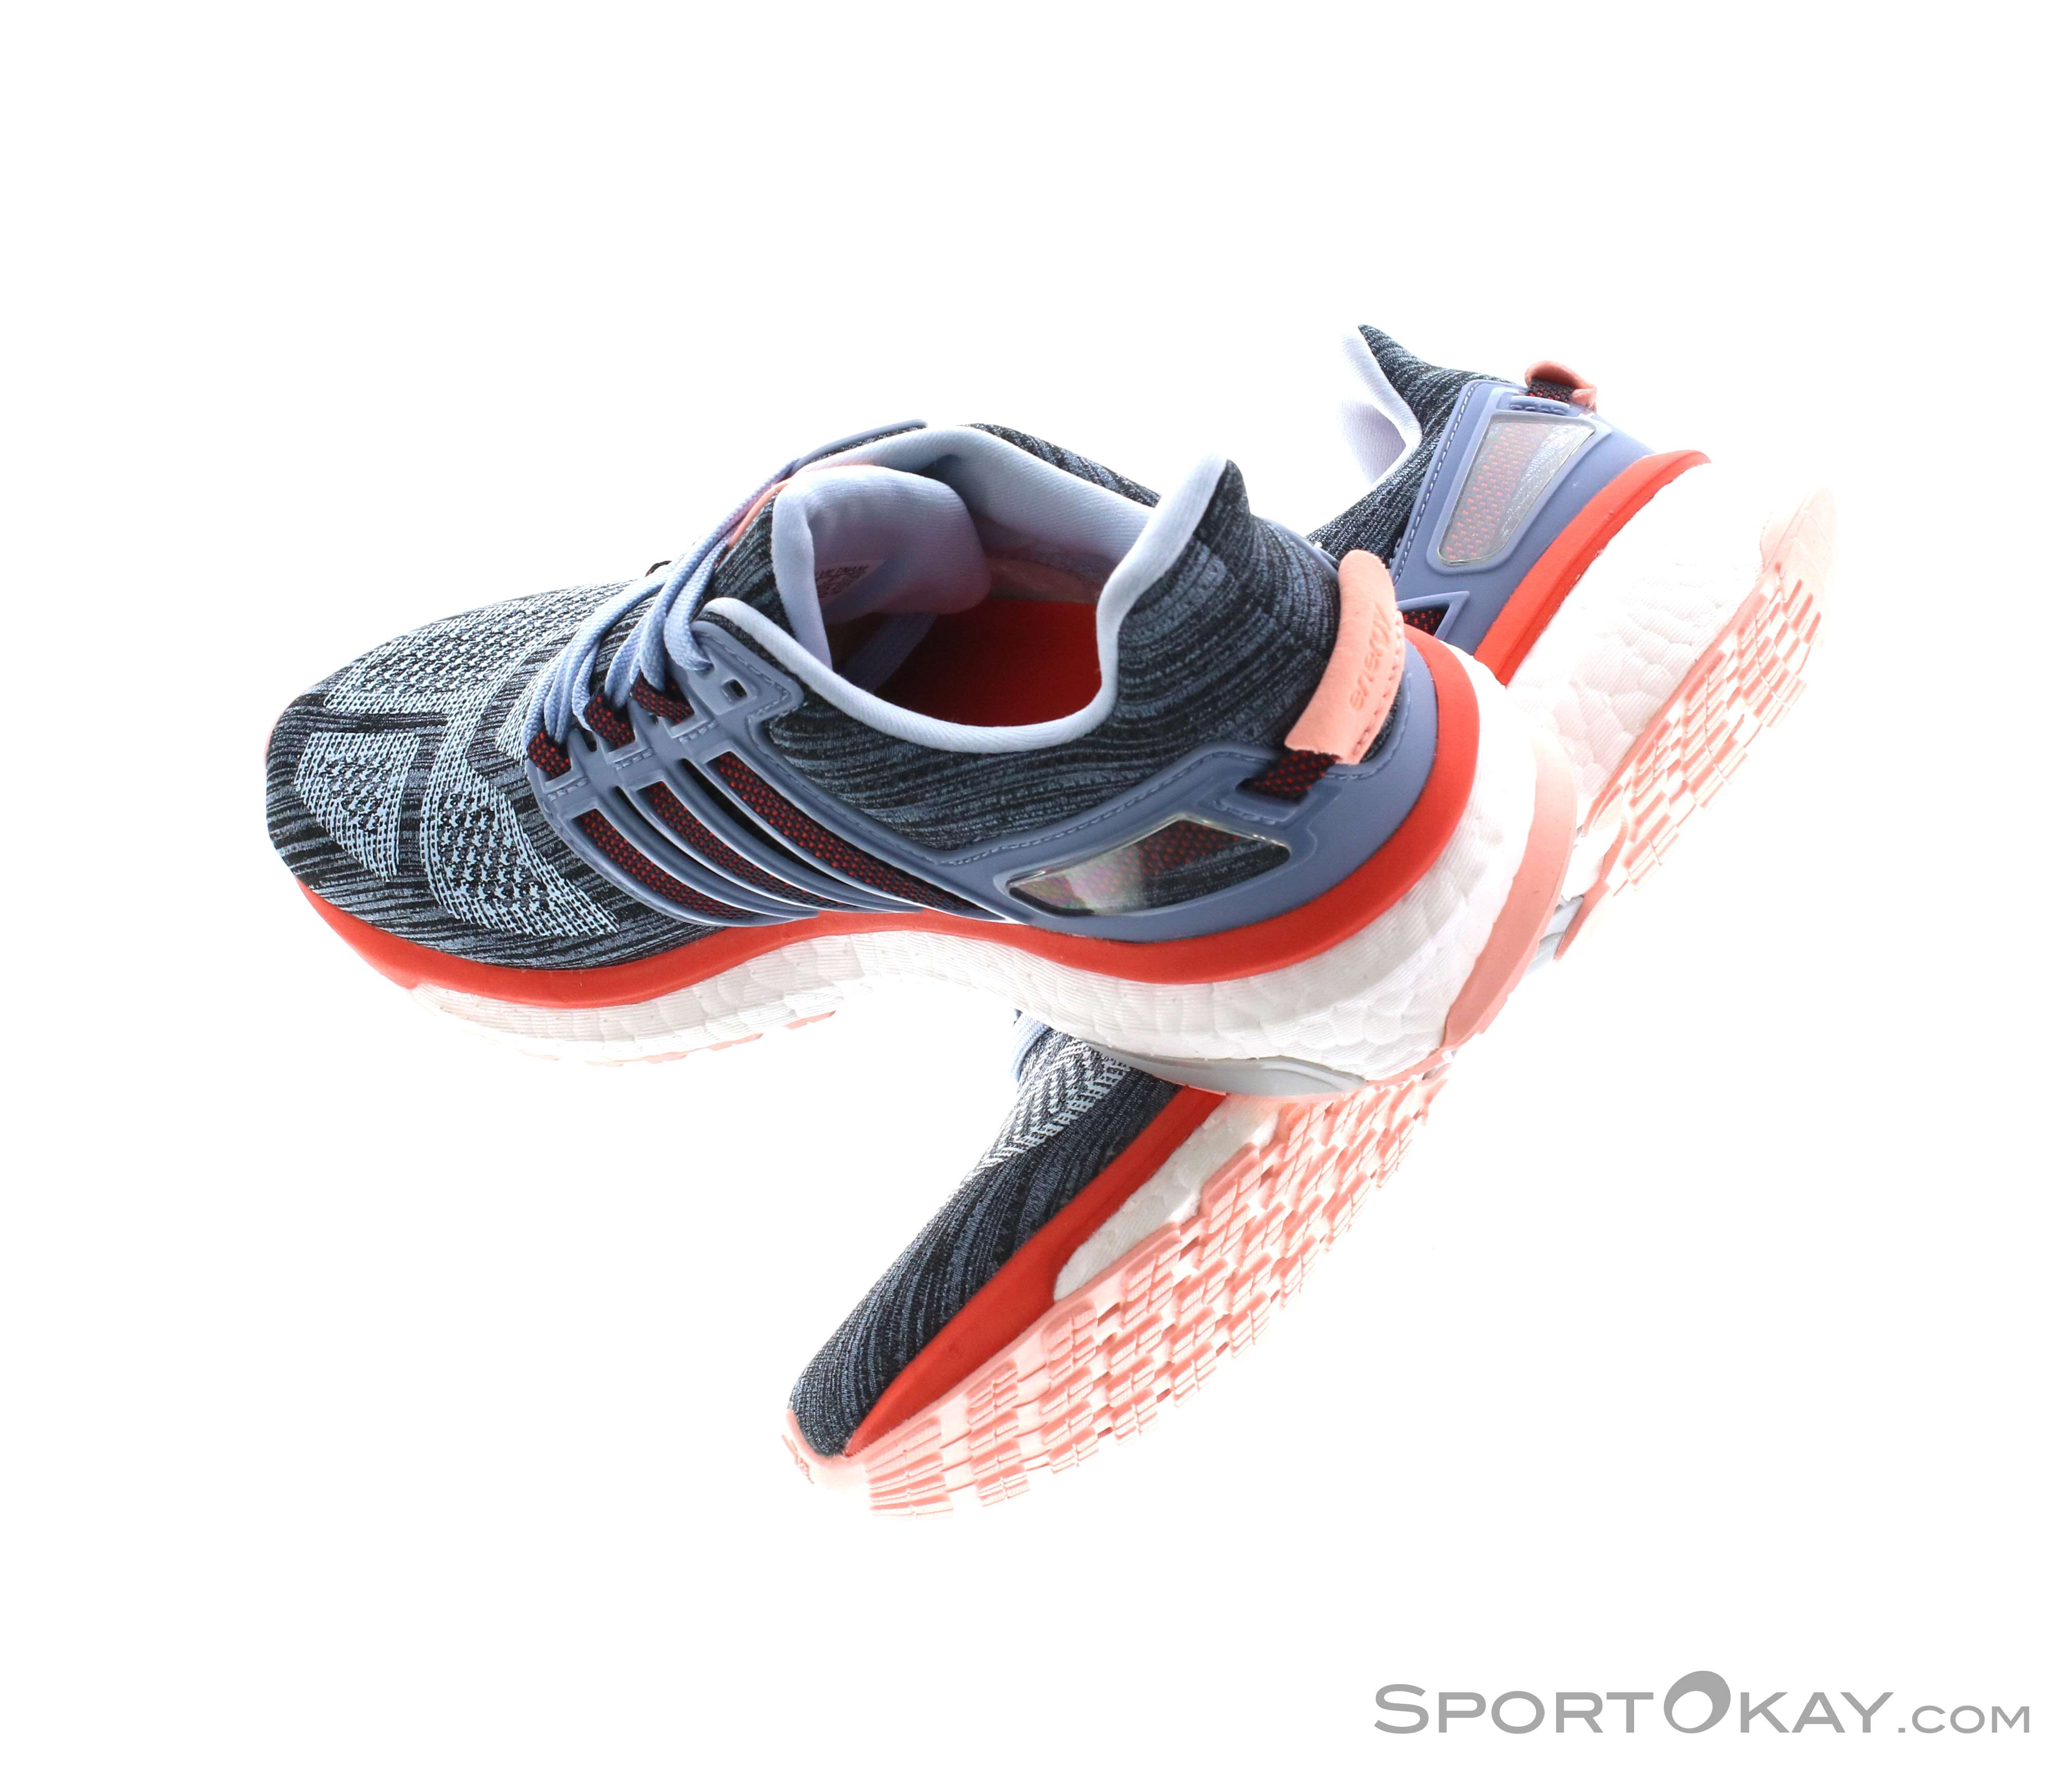 cheaper 1a016 abd24 adidas Energy Boost 3 Womens Running Shoes, adidas, Blue, , Female, 0002